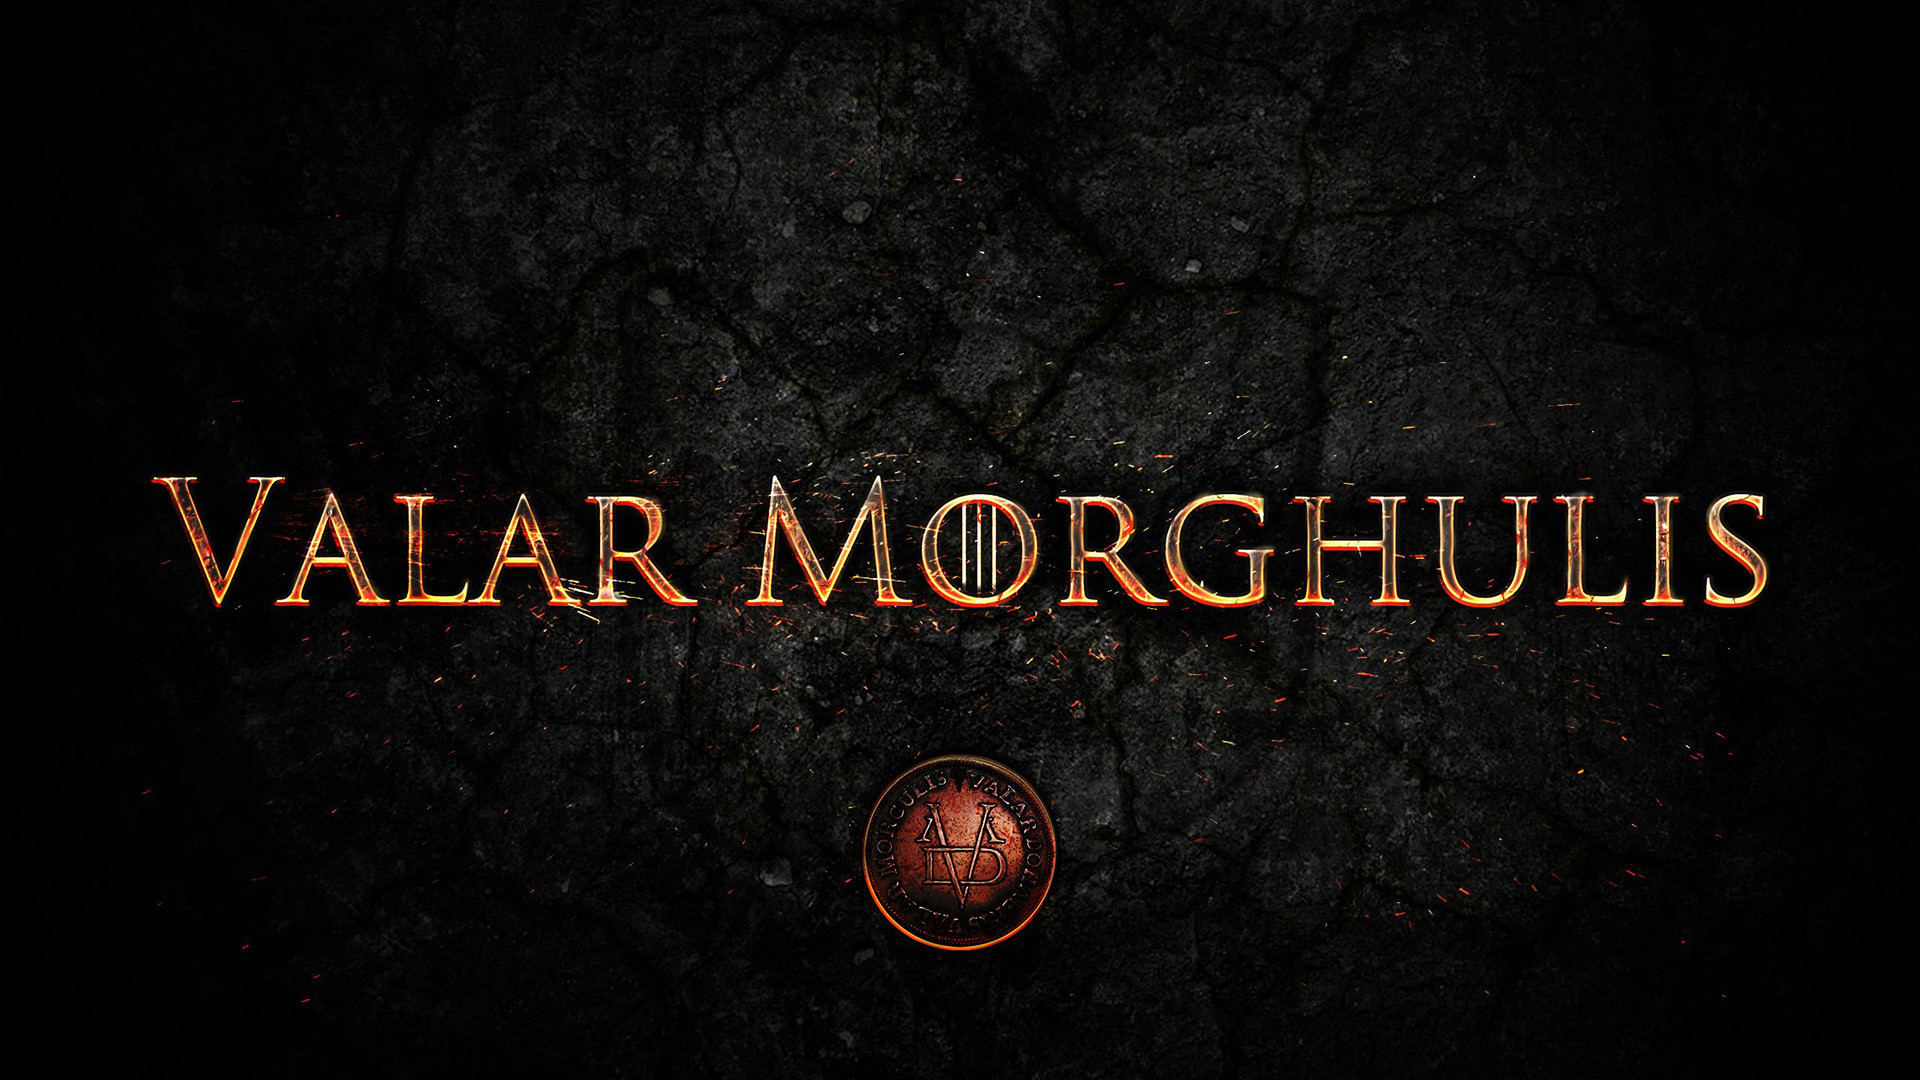 1920x1080 Valar-morghulis-game-of-thrones-wallpaper-6.jpg